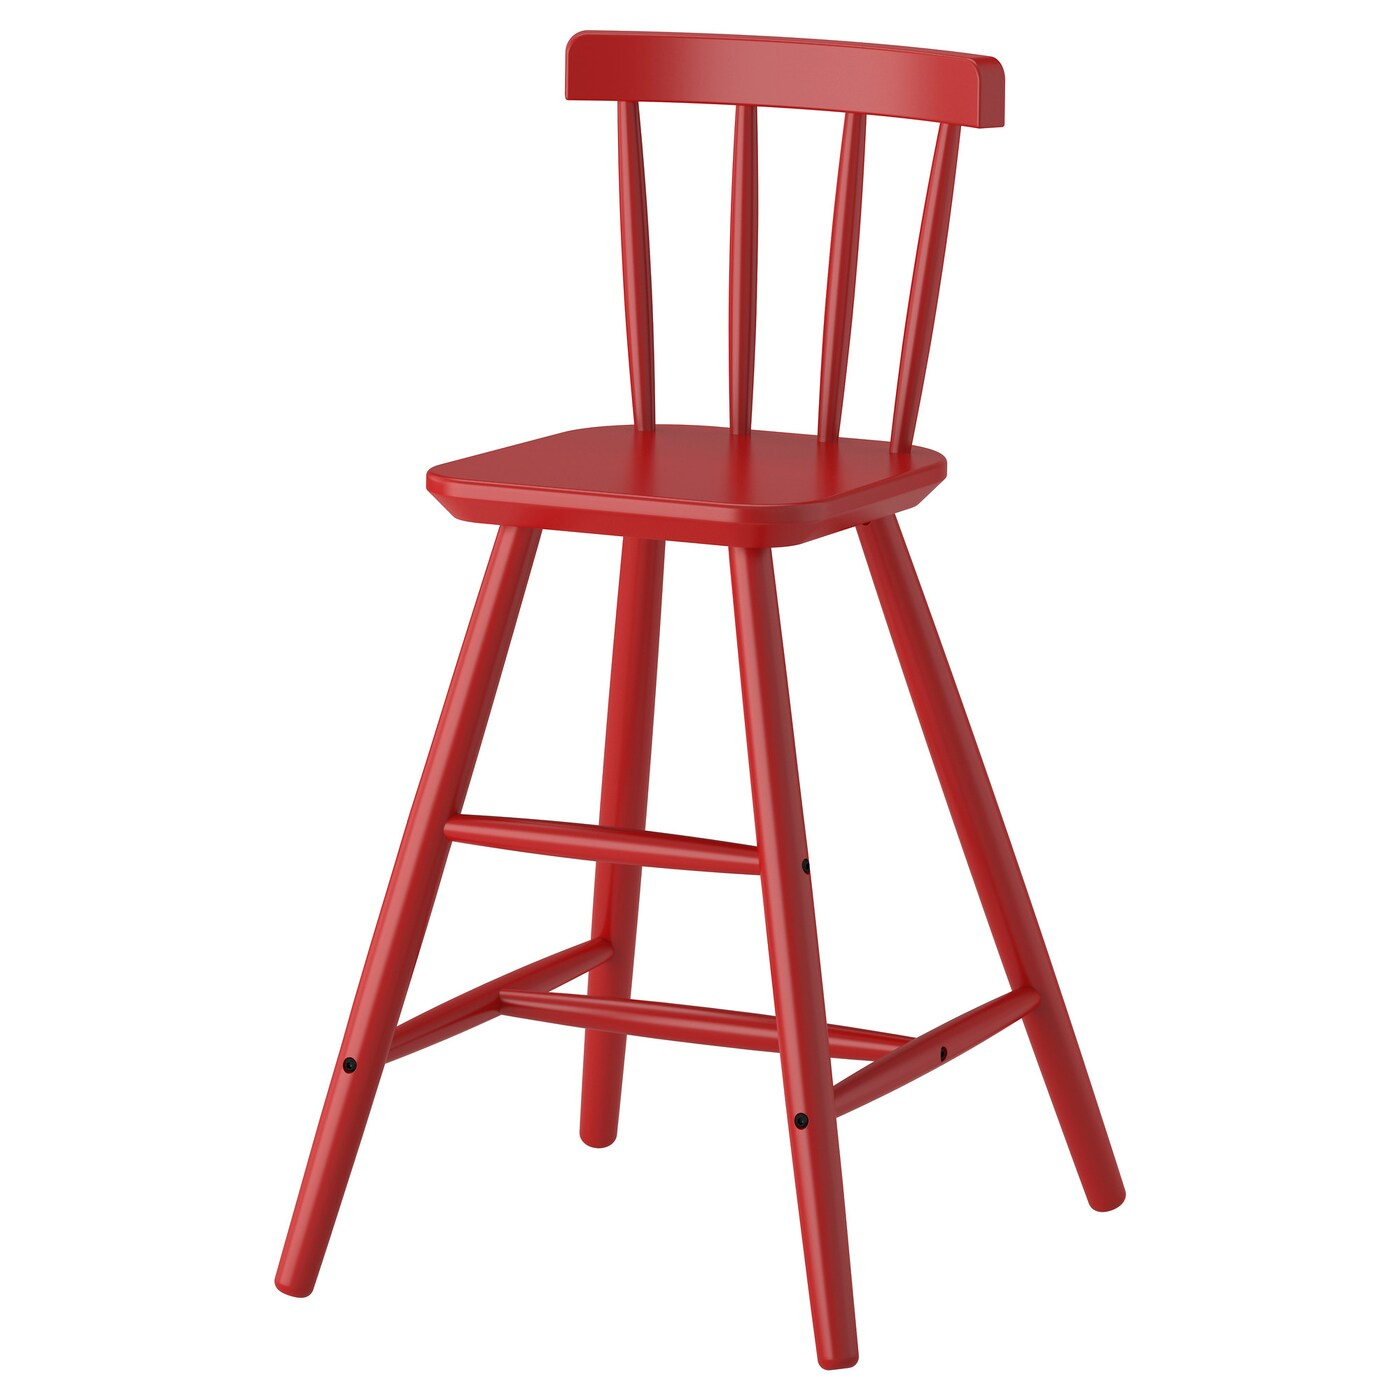 ikea junior desk chair chairs in target agam red